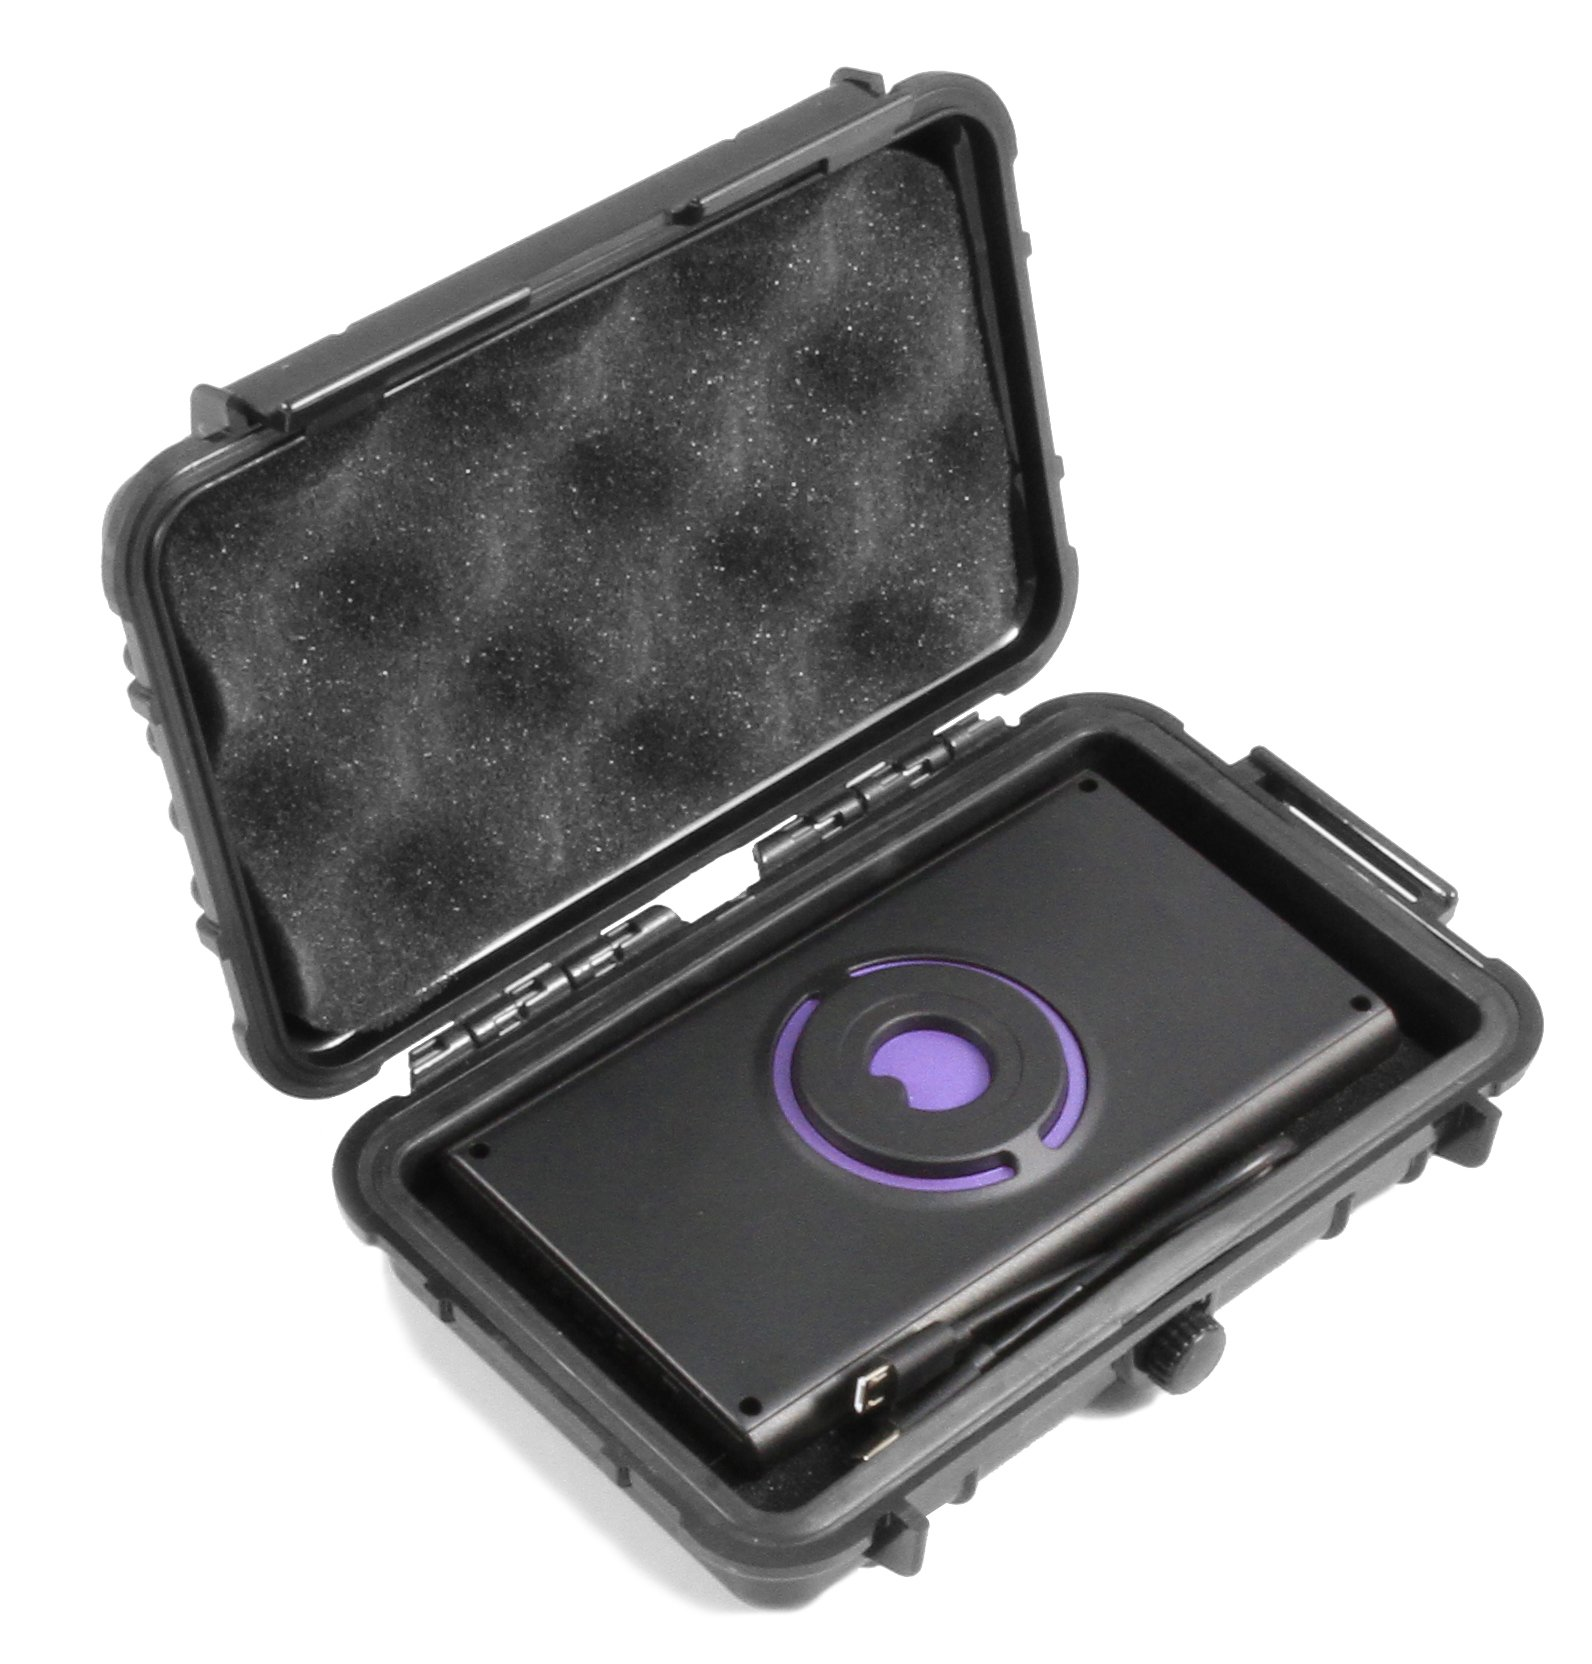 CASEMATIX Rugged Waterproof Imaging Sensor Case Fits DIY, Developer, Pro in Wall Imagers and Cables - Includes CASE ONLY, Does NOT Come with Device